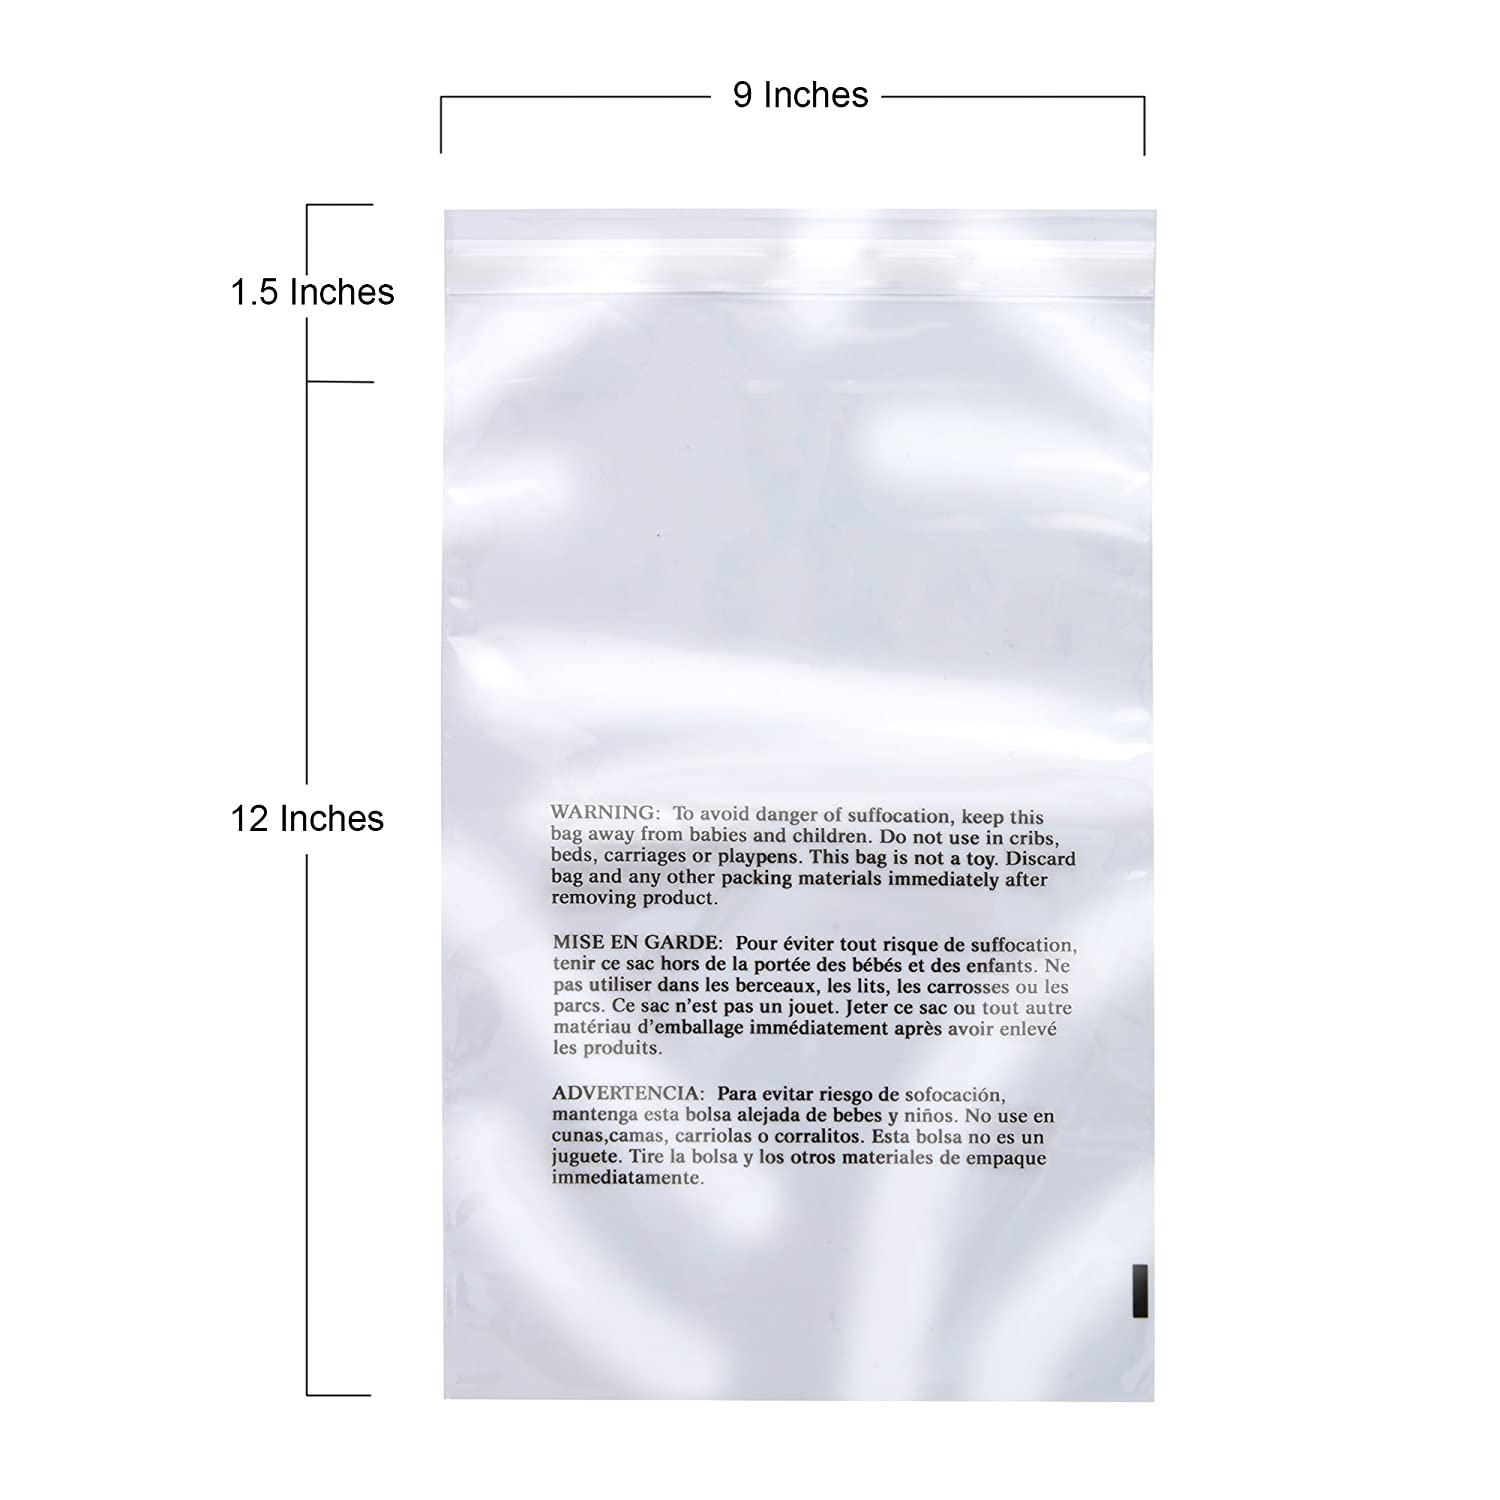 9x12 Resealable Retail Supply Co Clear Poly Bags with Suffocation Warning Multiple Size Options Available